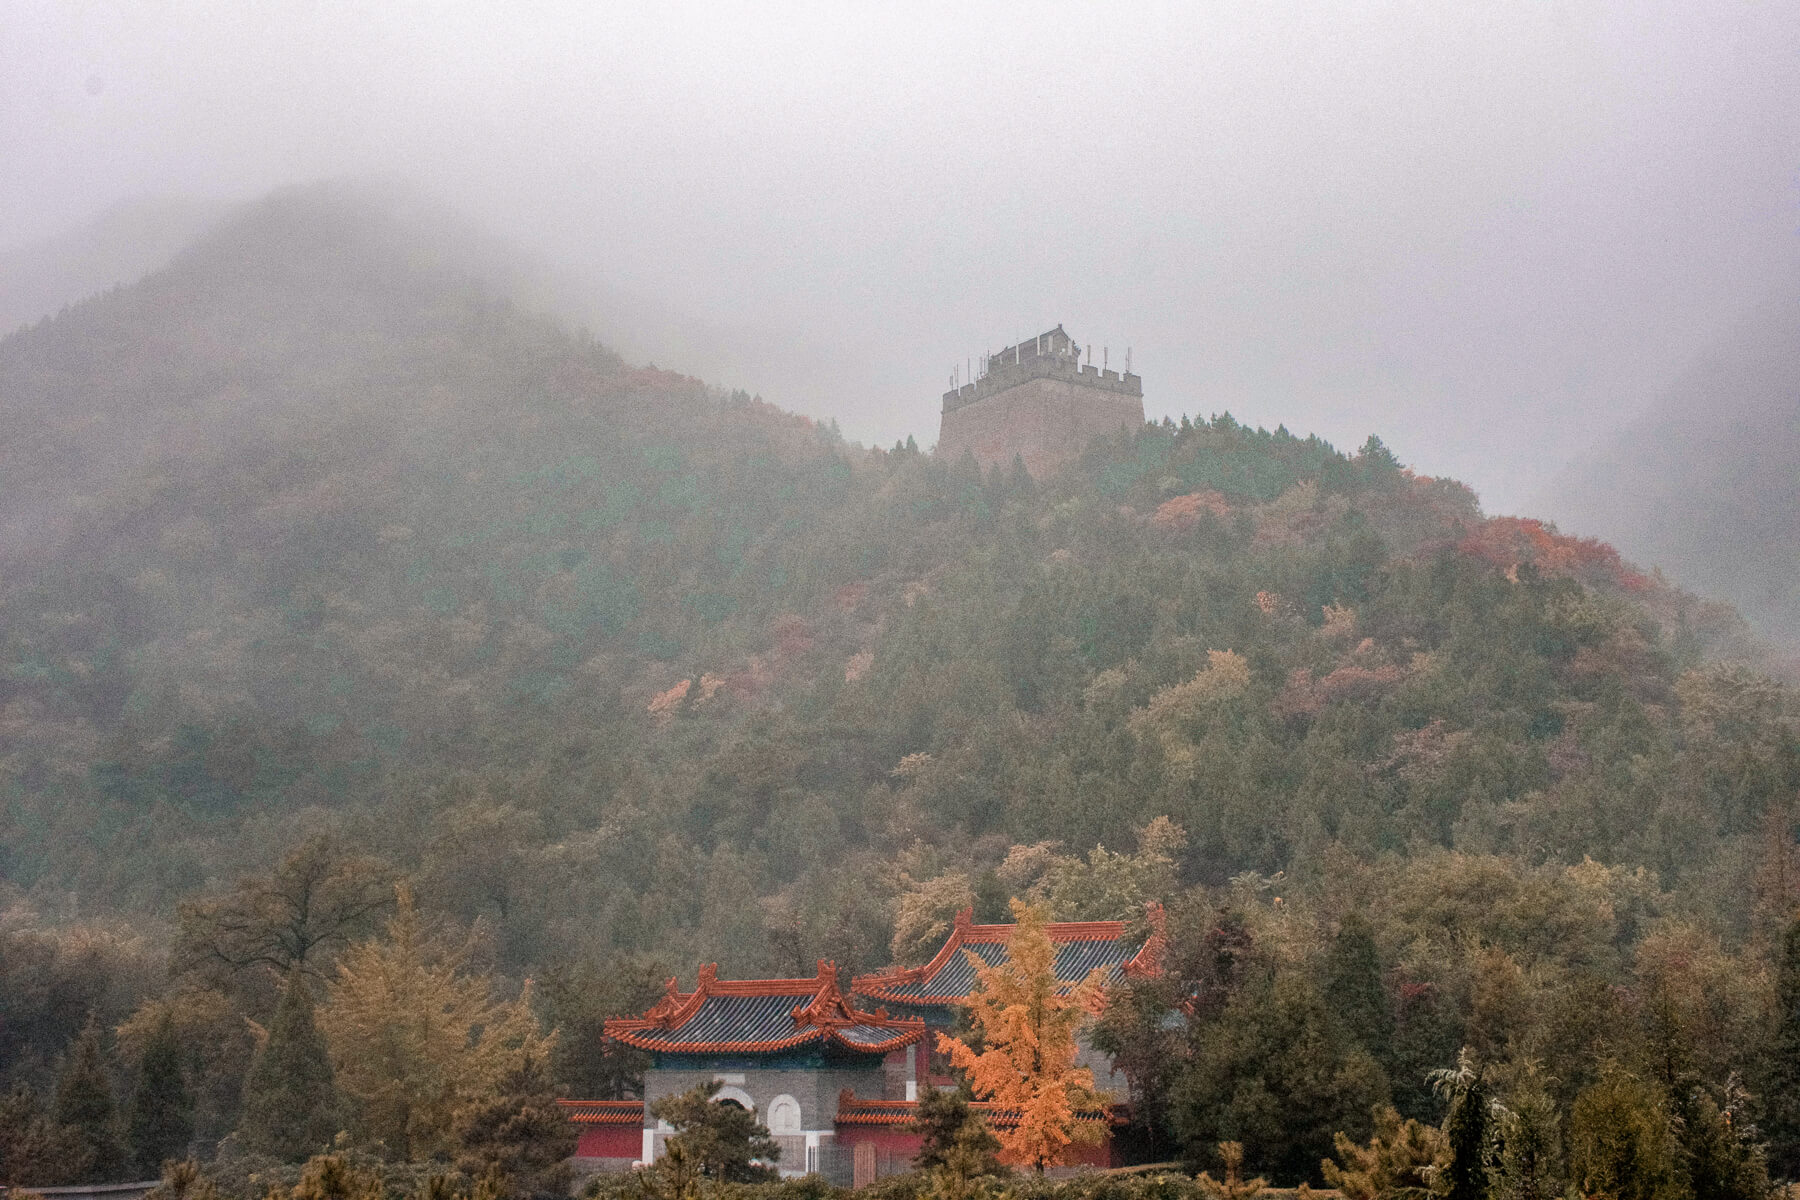 A temple at the bottom of a mountain, with the Great Wall winding up the hill behind it in the mist